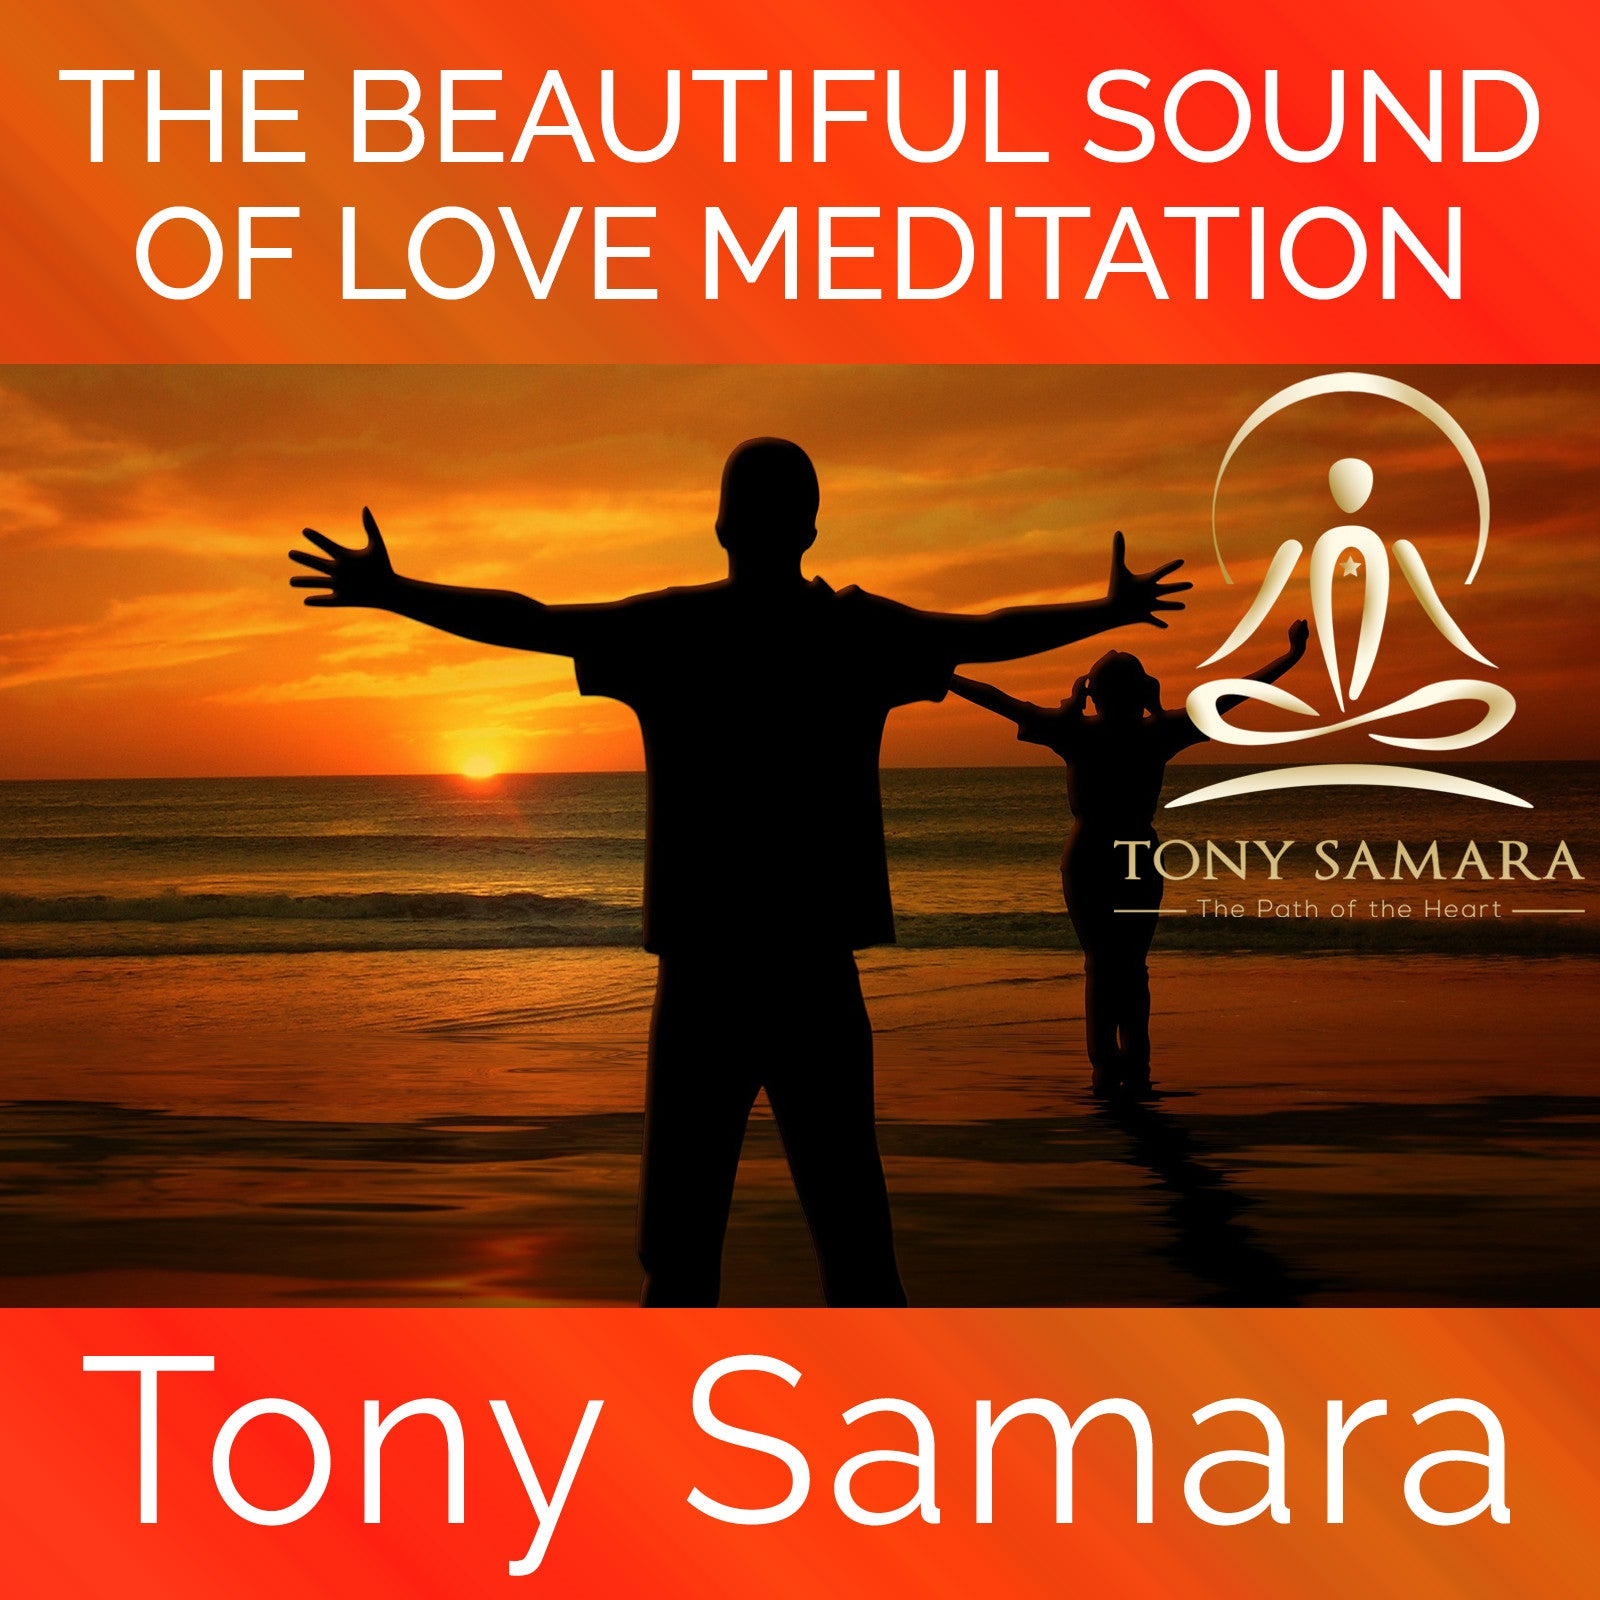 The Beautiful Sound of Love Meditation (MP3 Audio Download) - Tony Samara Meditation